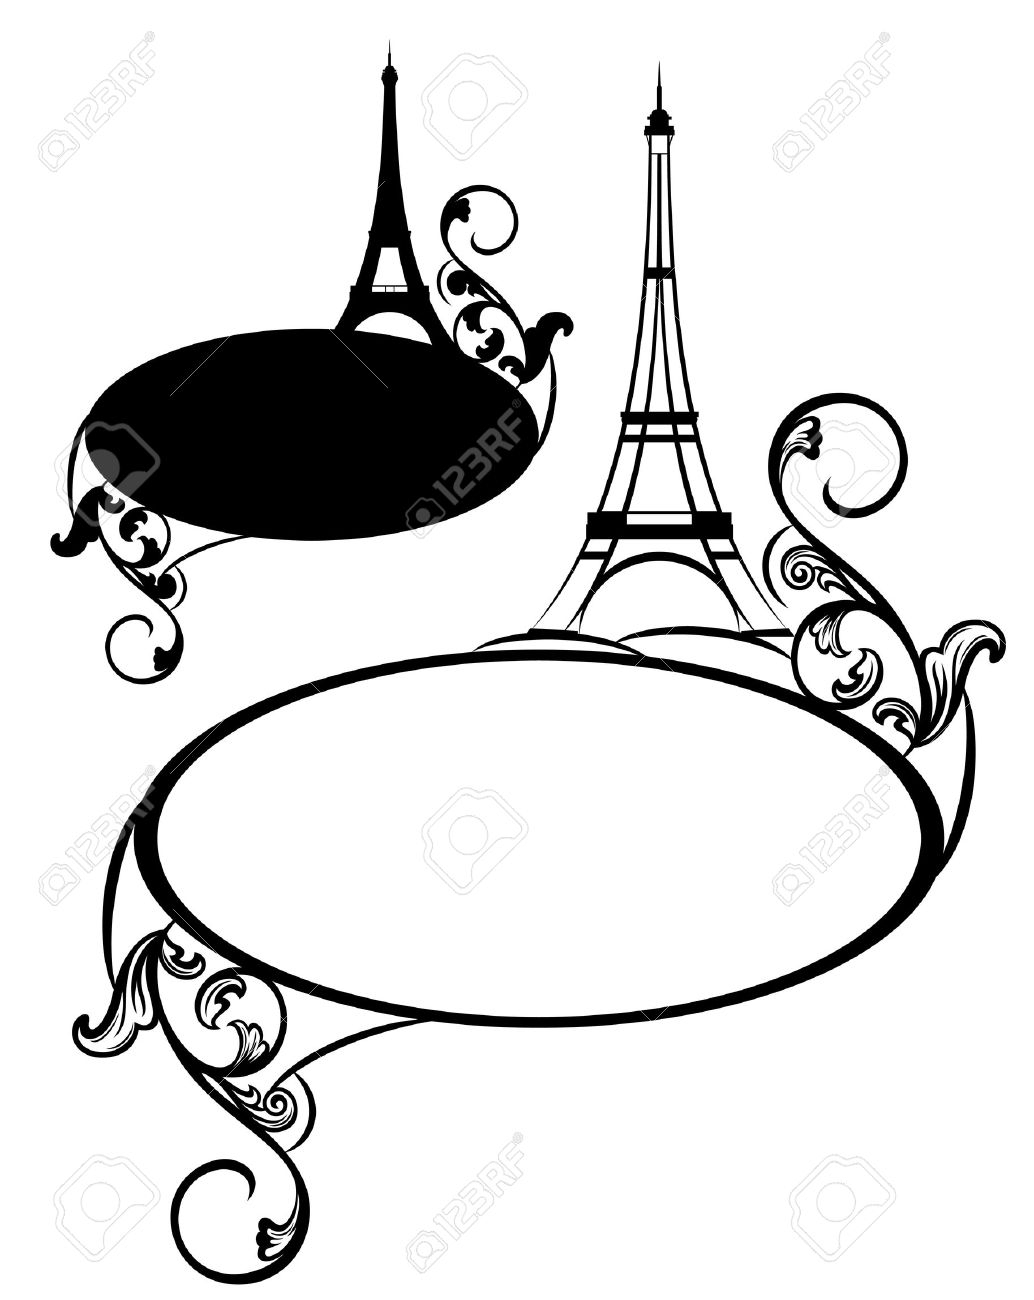 elegant frame with eiffel tower and decorative floral swirls - blank france theme vector border - 30219950